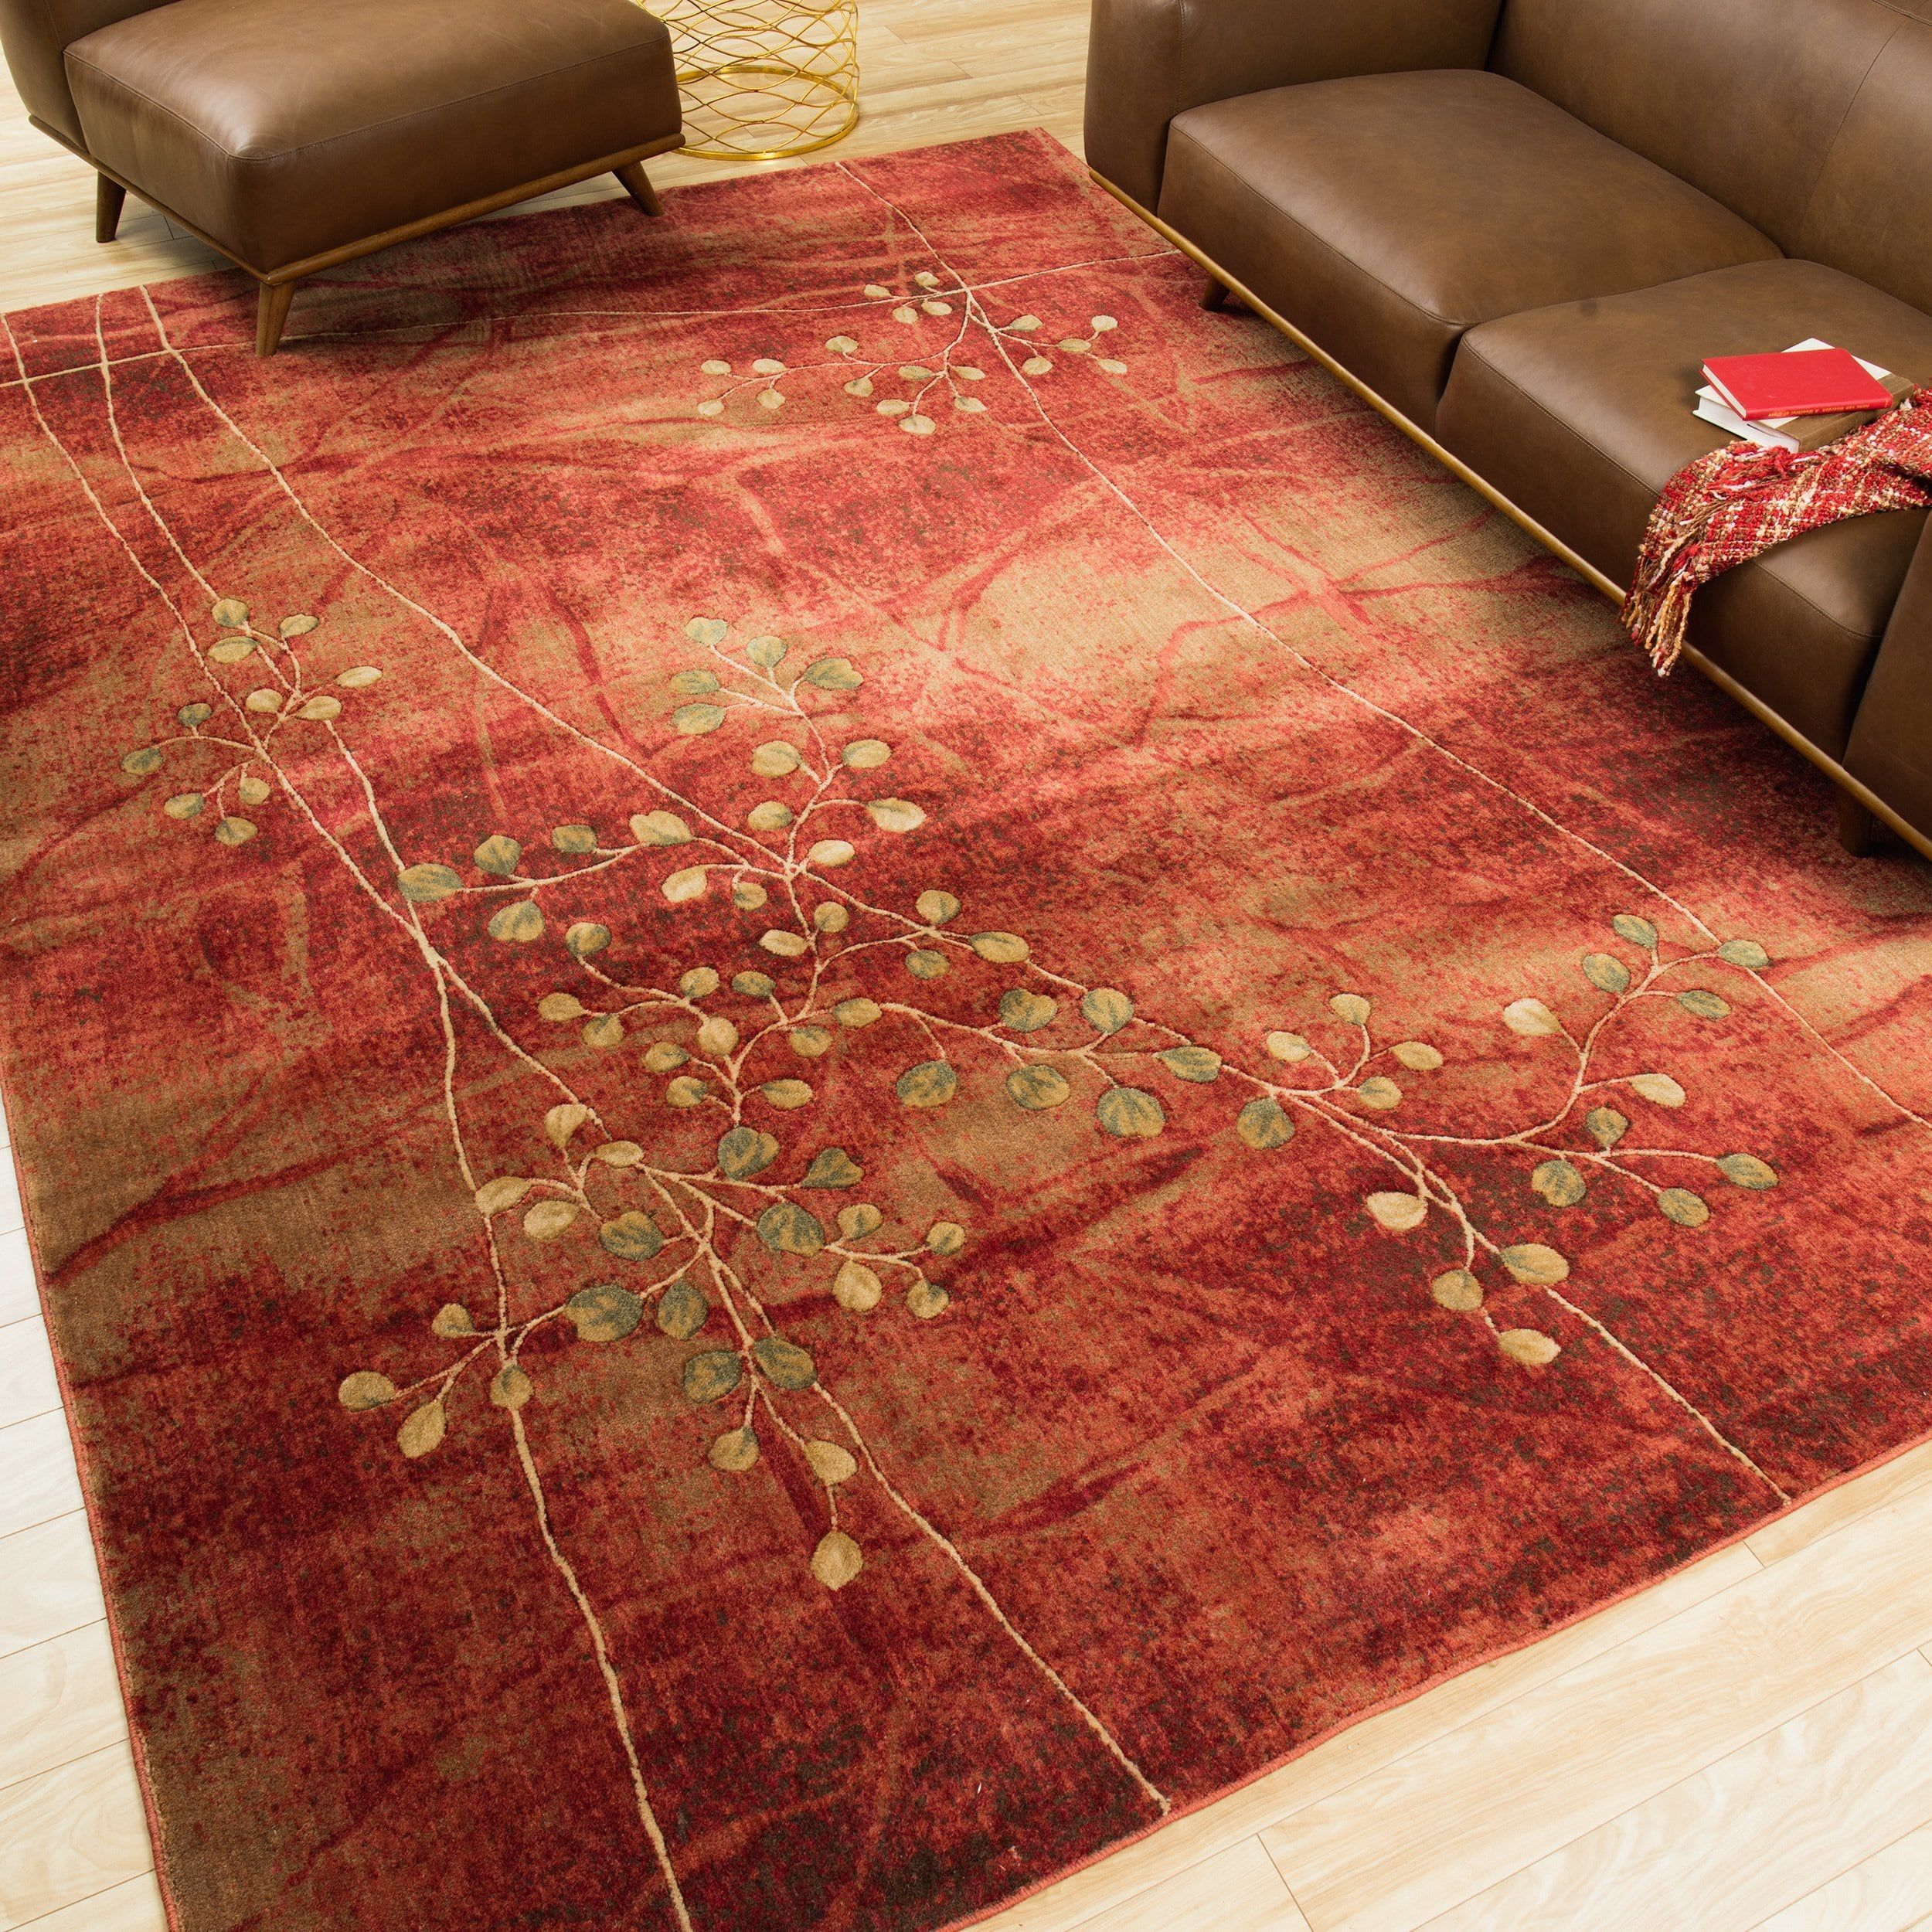 "Copper Grove Uwharrie Red Floral Area Rug (Red 7'9"" x 10'10"") (Polyacrylic, Abstract)"